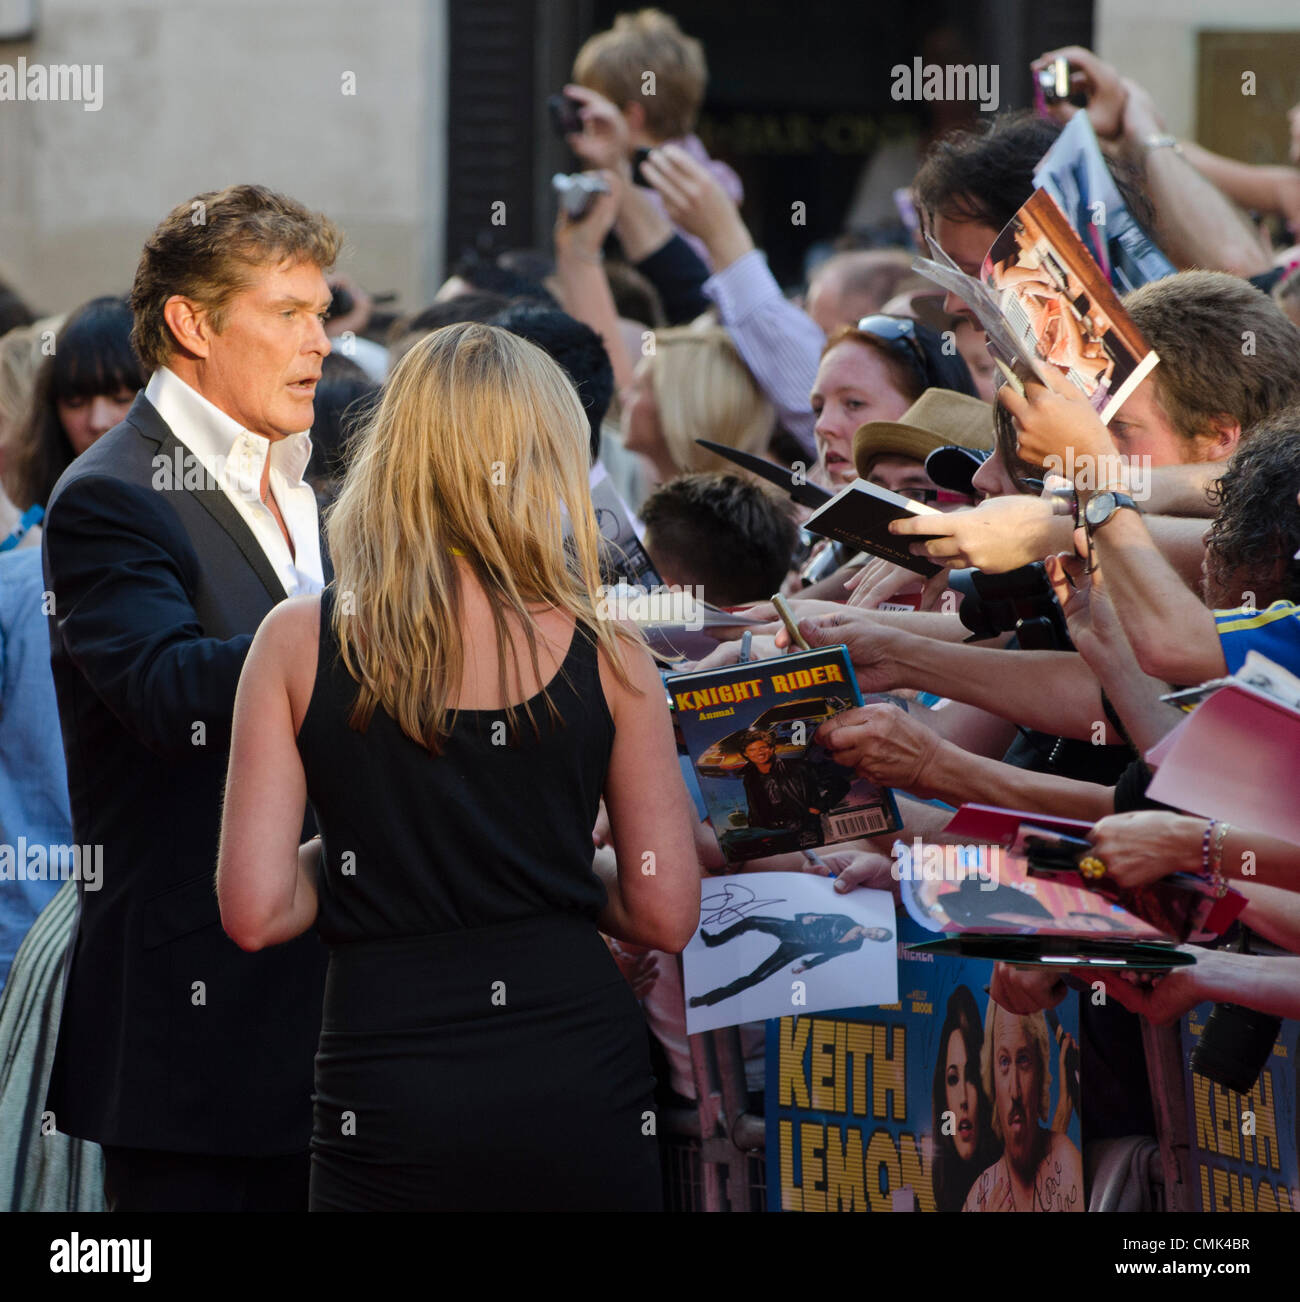 David Hasselhoff Zeichen Autogramme an Keith Lemon Film, Premiere Odeon Leicester Square in London Uk Montag, 20. Stockbild